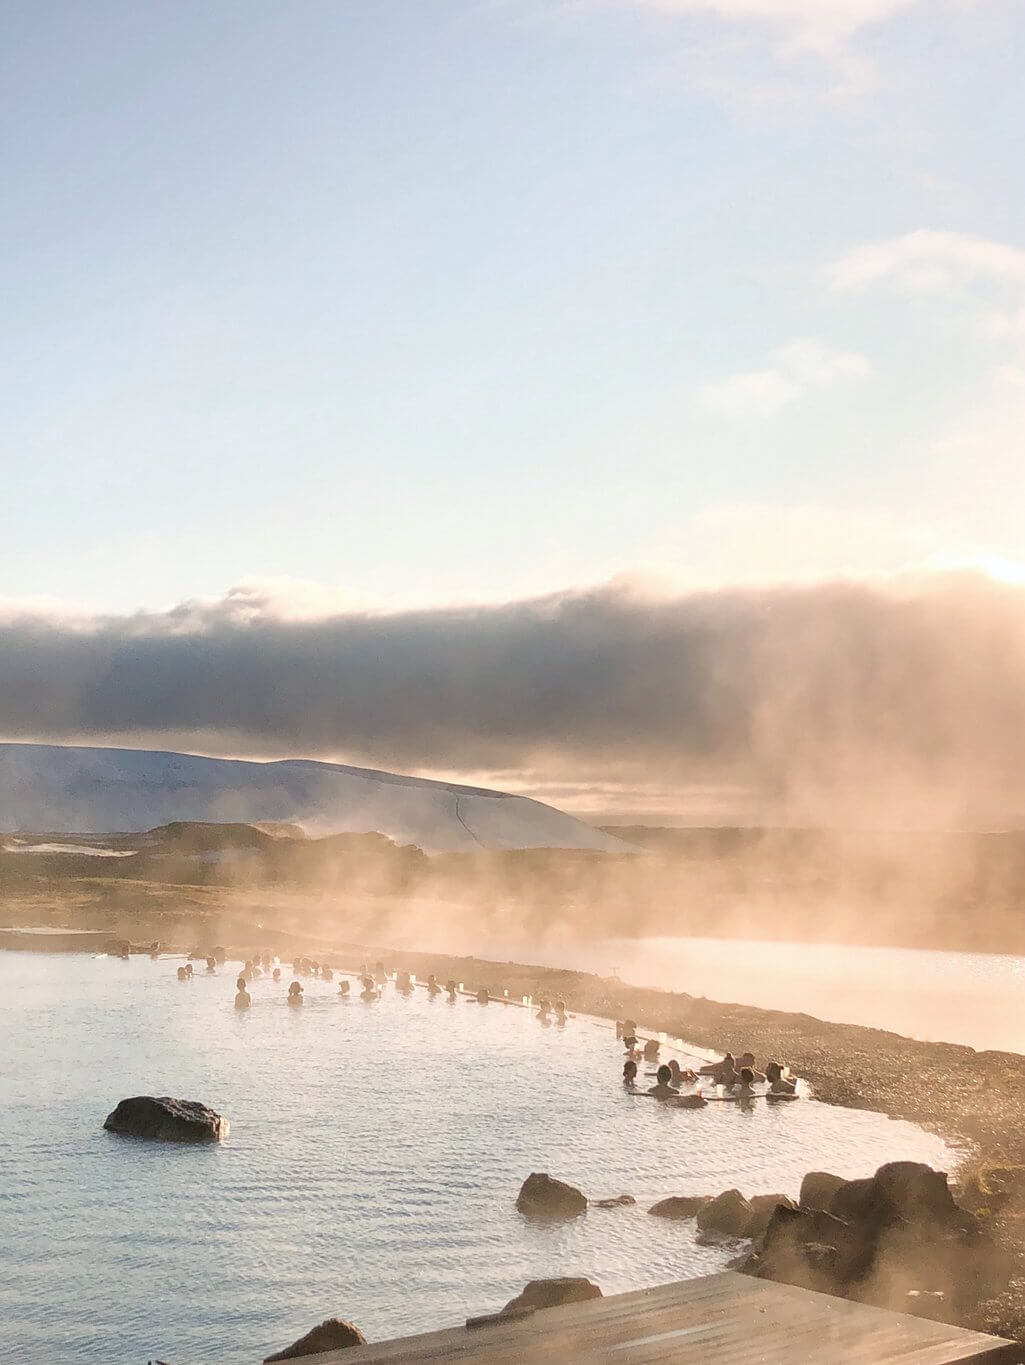 Myvatn Nature Baths Island